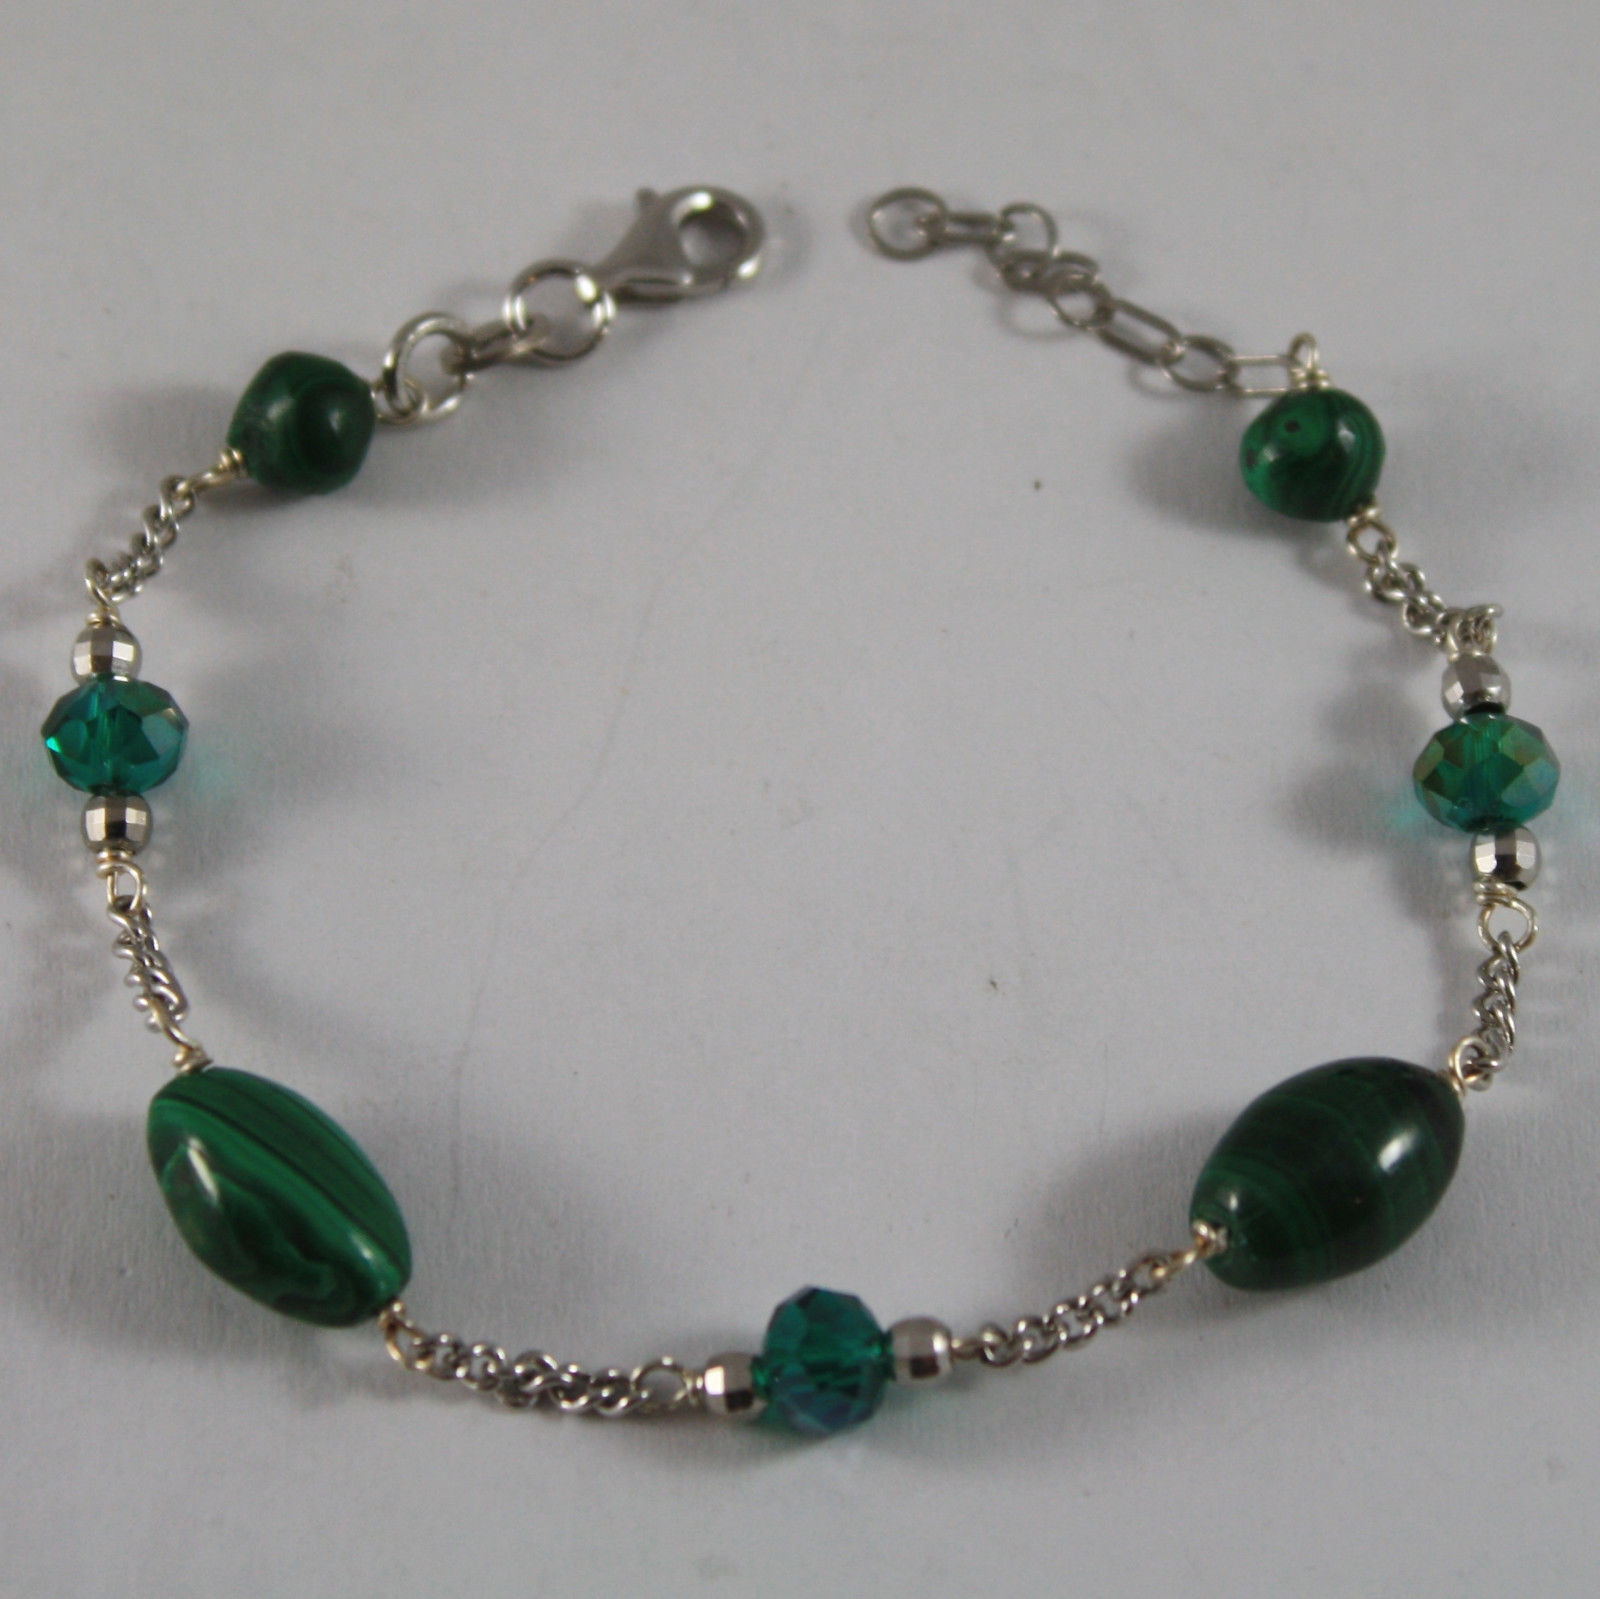 .925 RHODIUM SILVER BRACELET WITH GREEN MALACHITE AND GREEN CRYSTALS